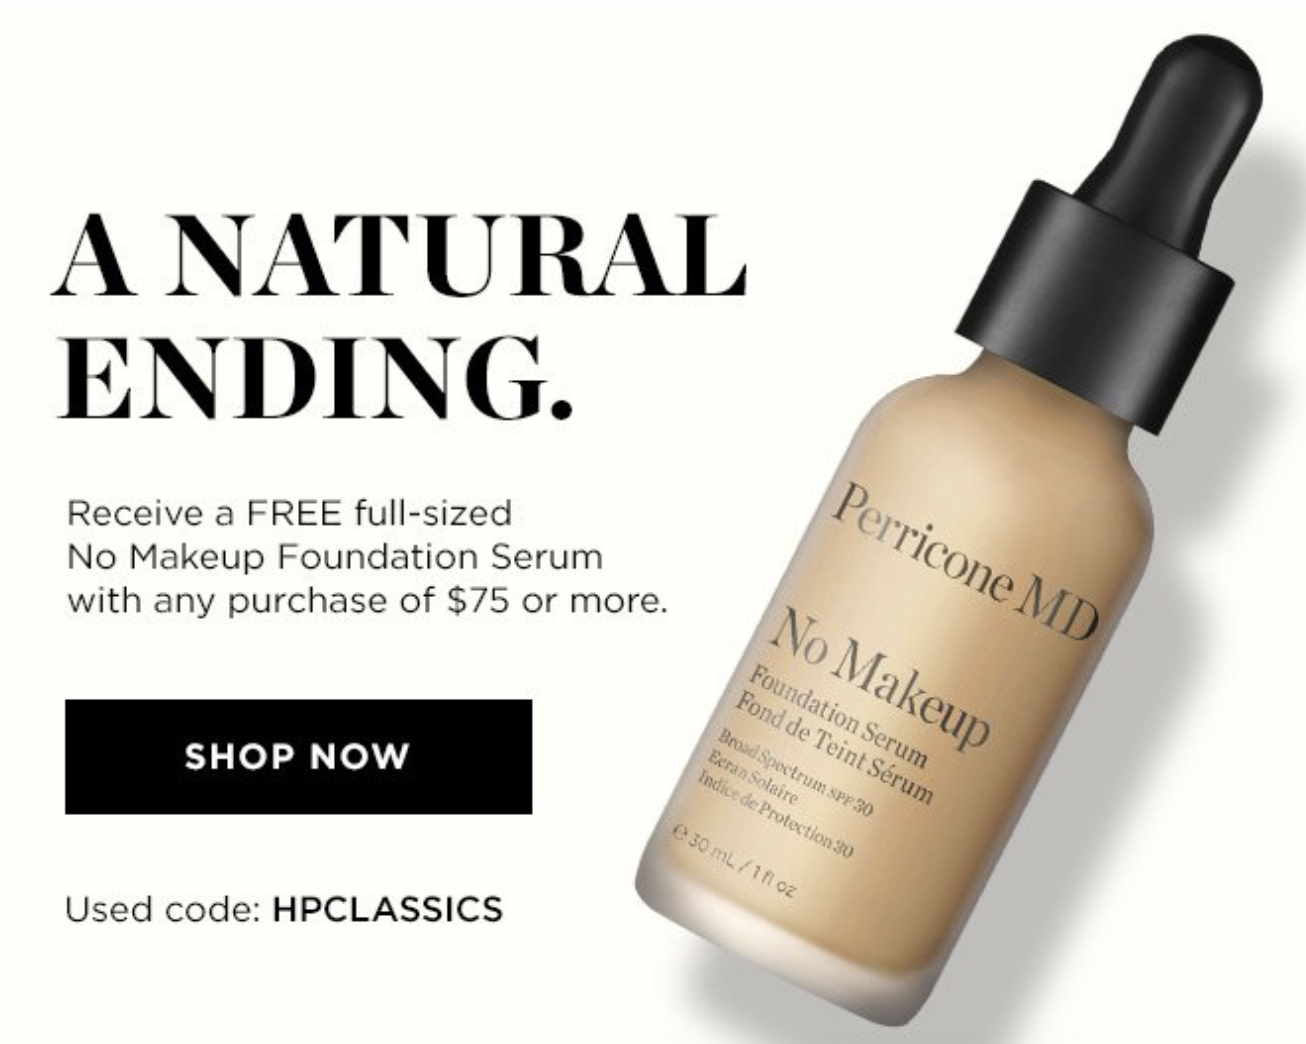 Perricone MD Free full size No Makeup Foundation Serum